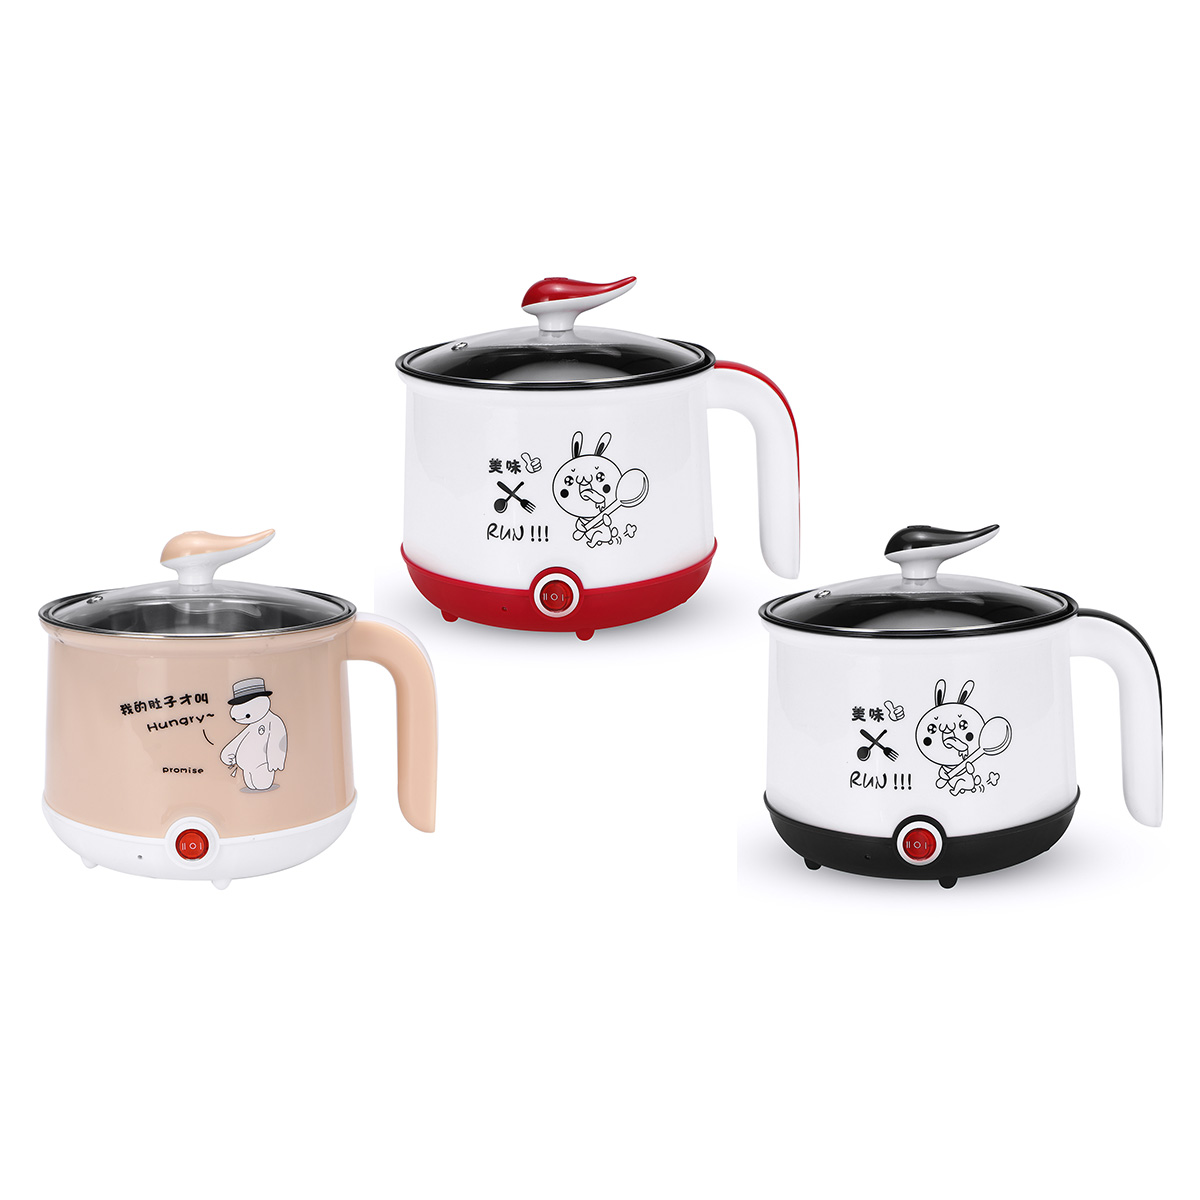 600W 220V EU Mini Multifunction Electric Cooking Machine Single Layer Available Hot Pot Multi Electric Rice Cooker